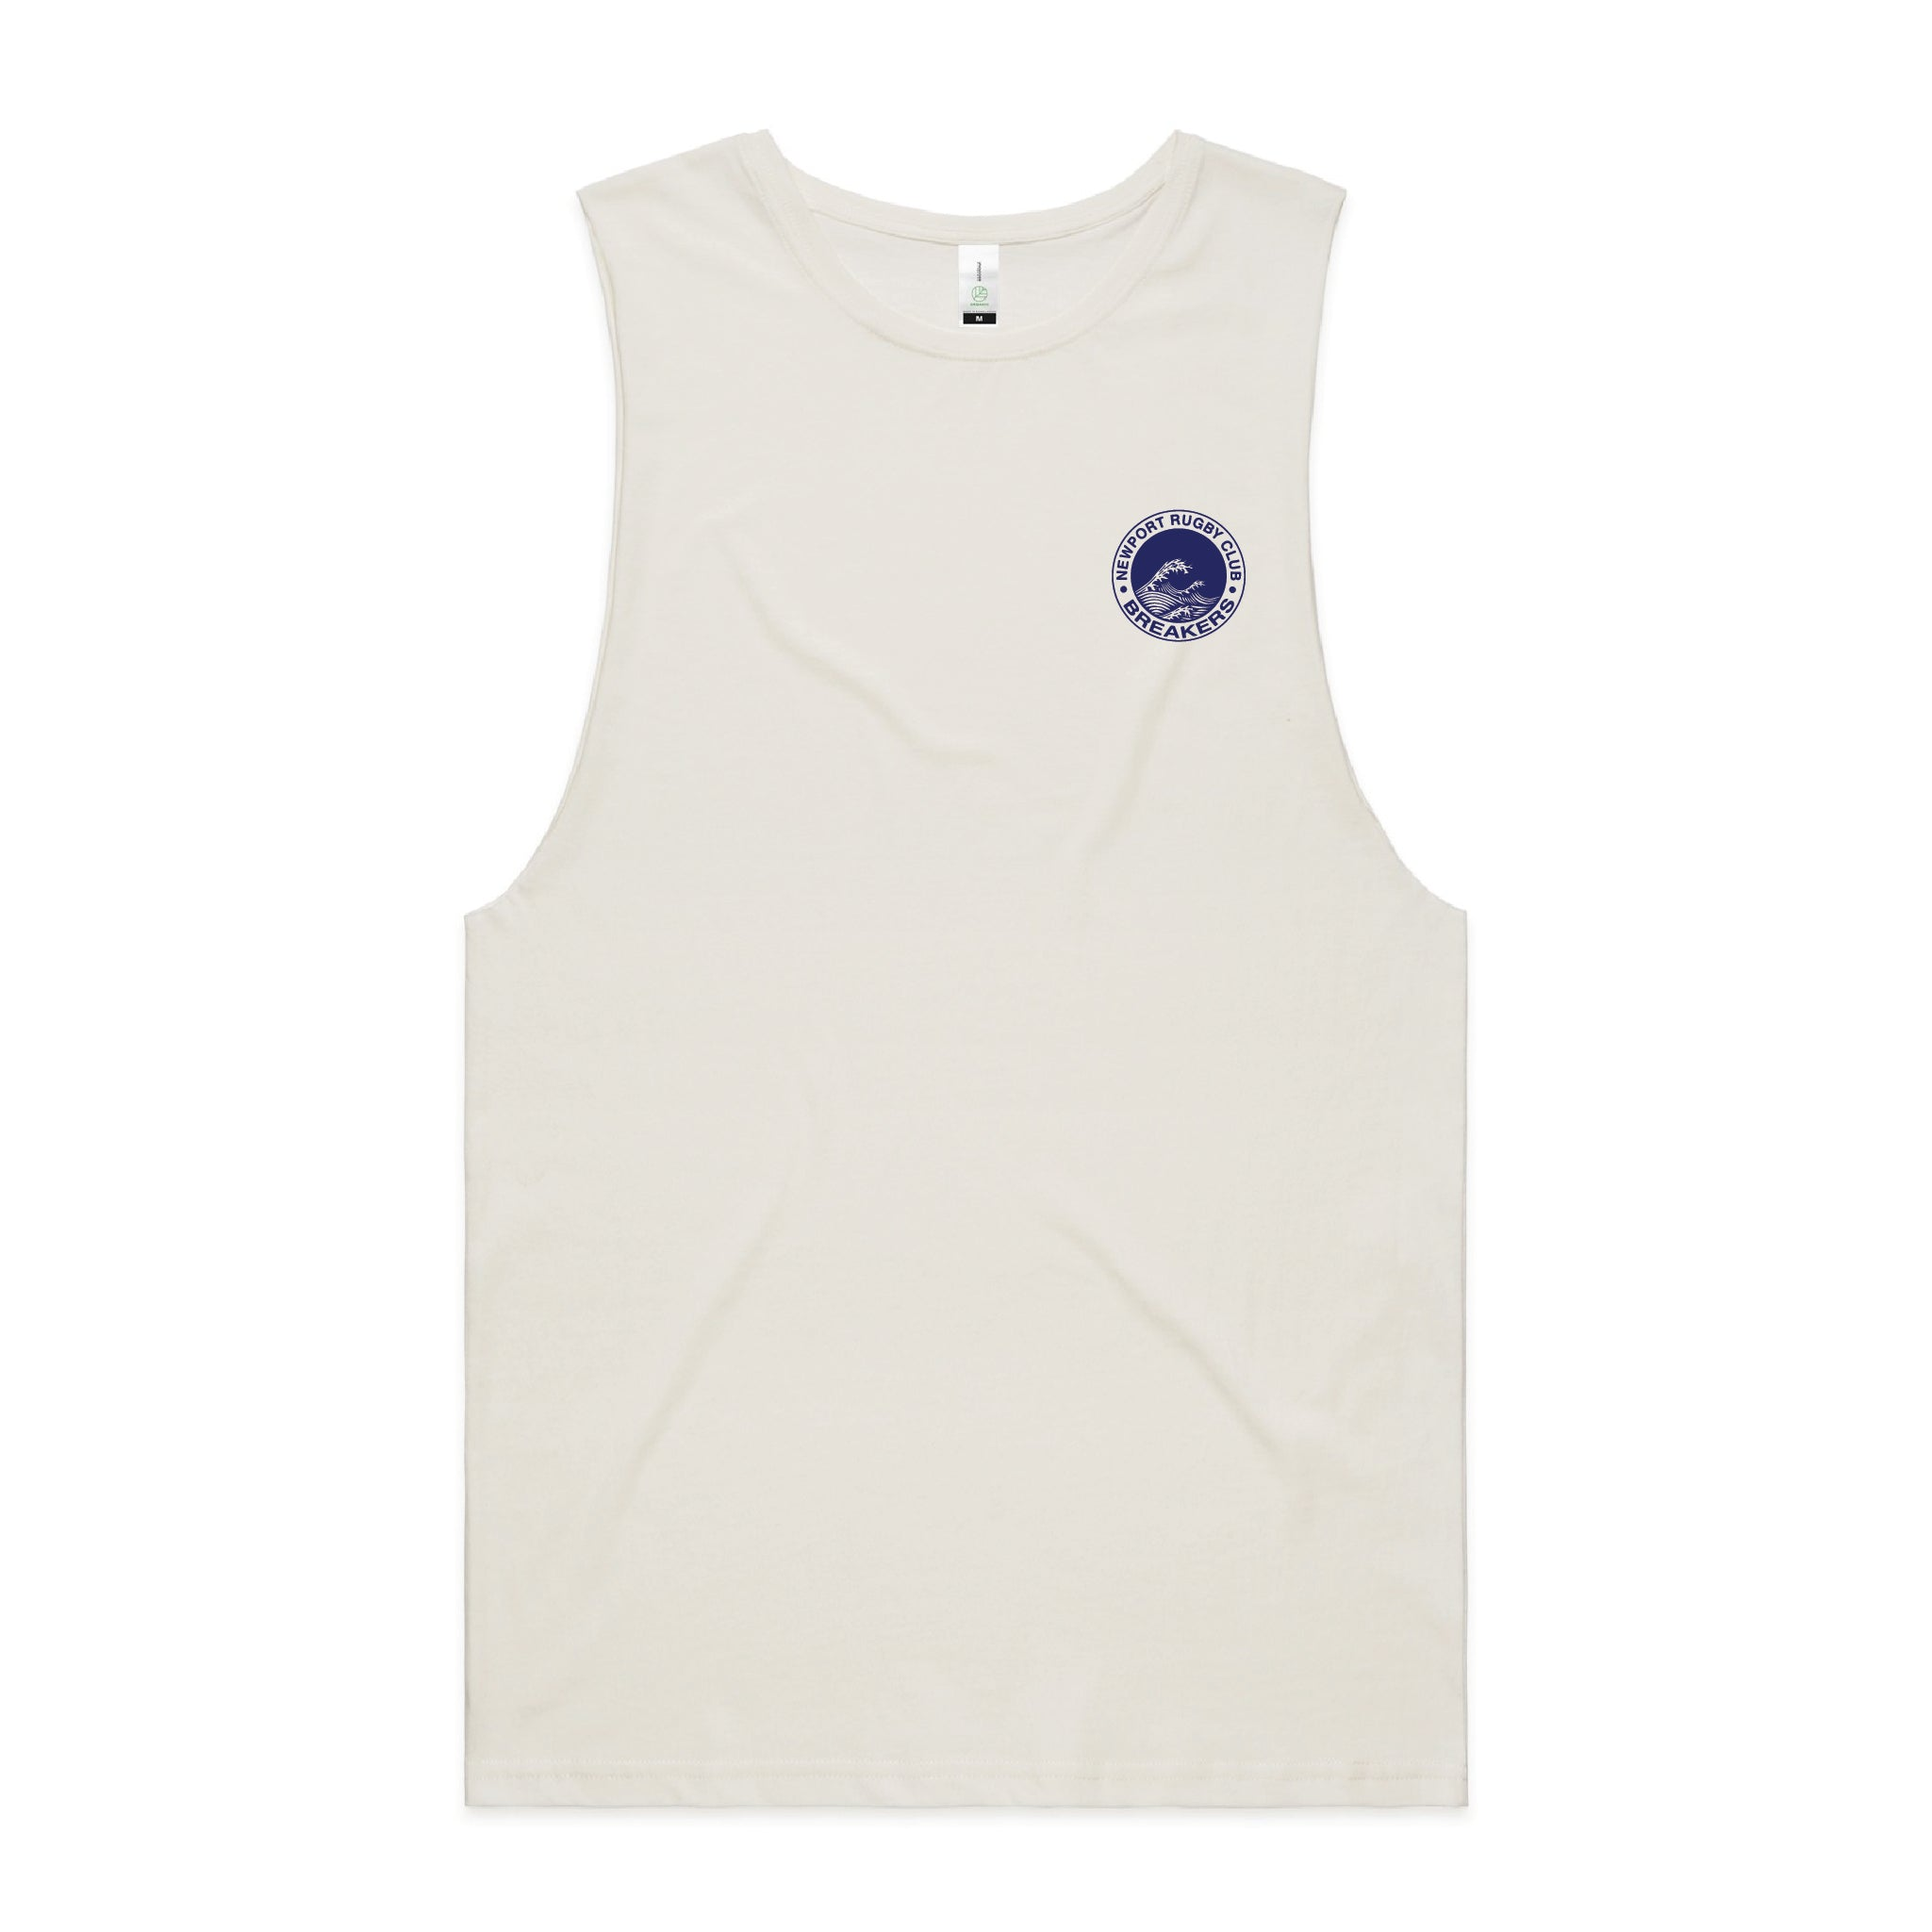 Newport Breakers Tank - Fresh Tees SYD